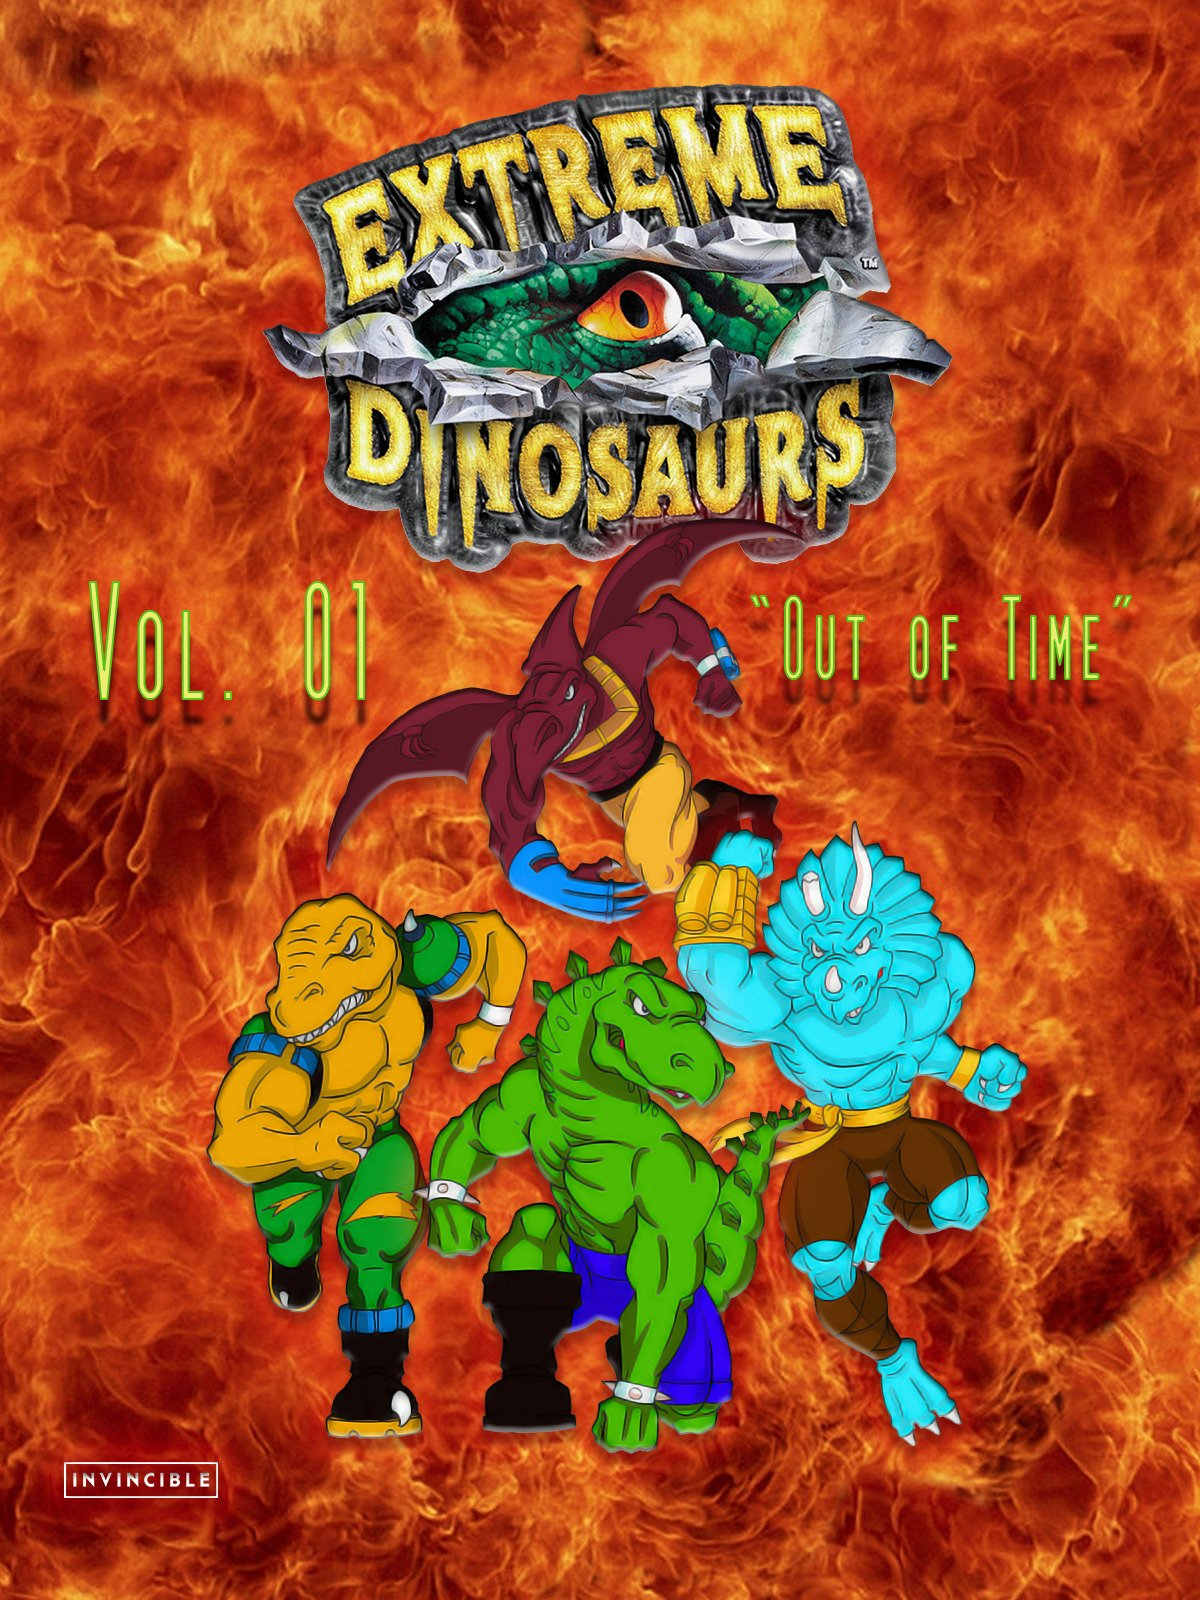 Extreme Dinosaurs Vol. 01Out of Time